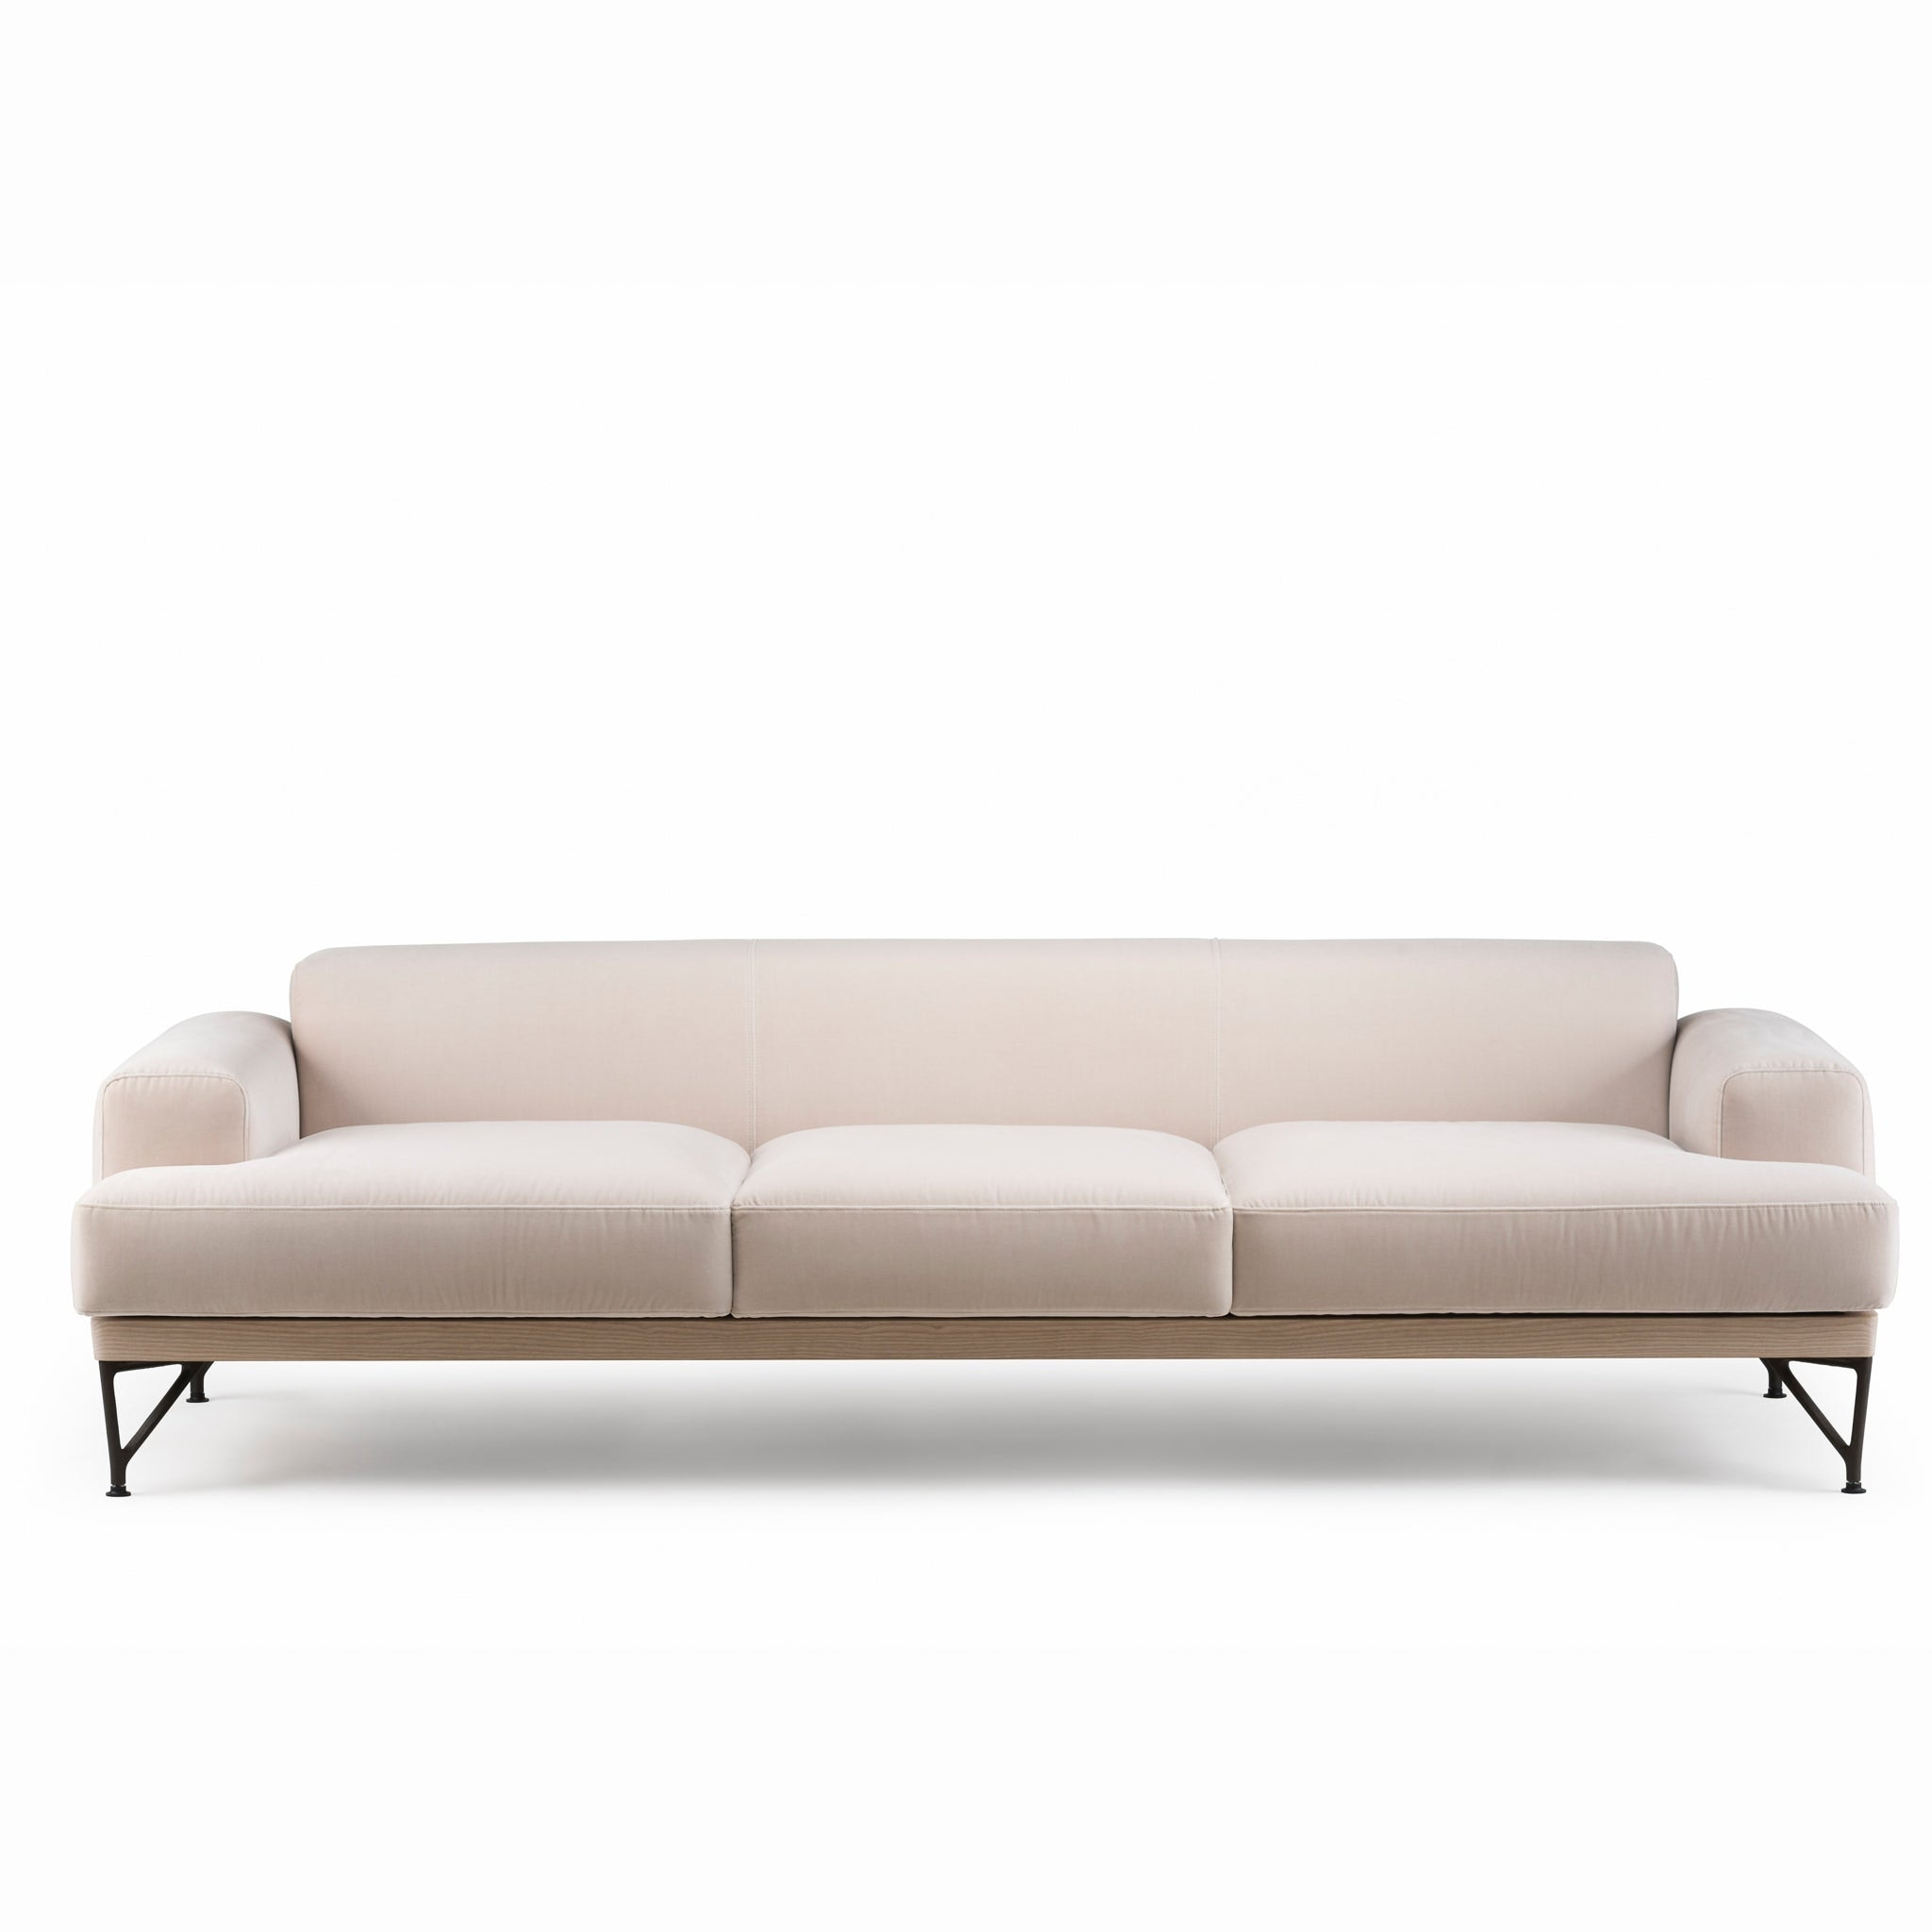 Armstrong Sofa by Matthew Hilton